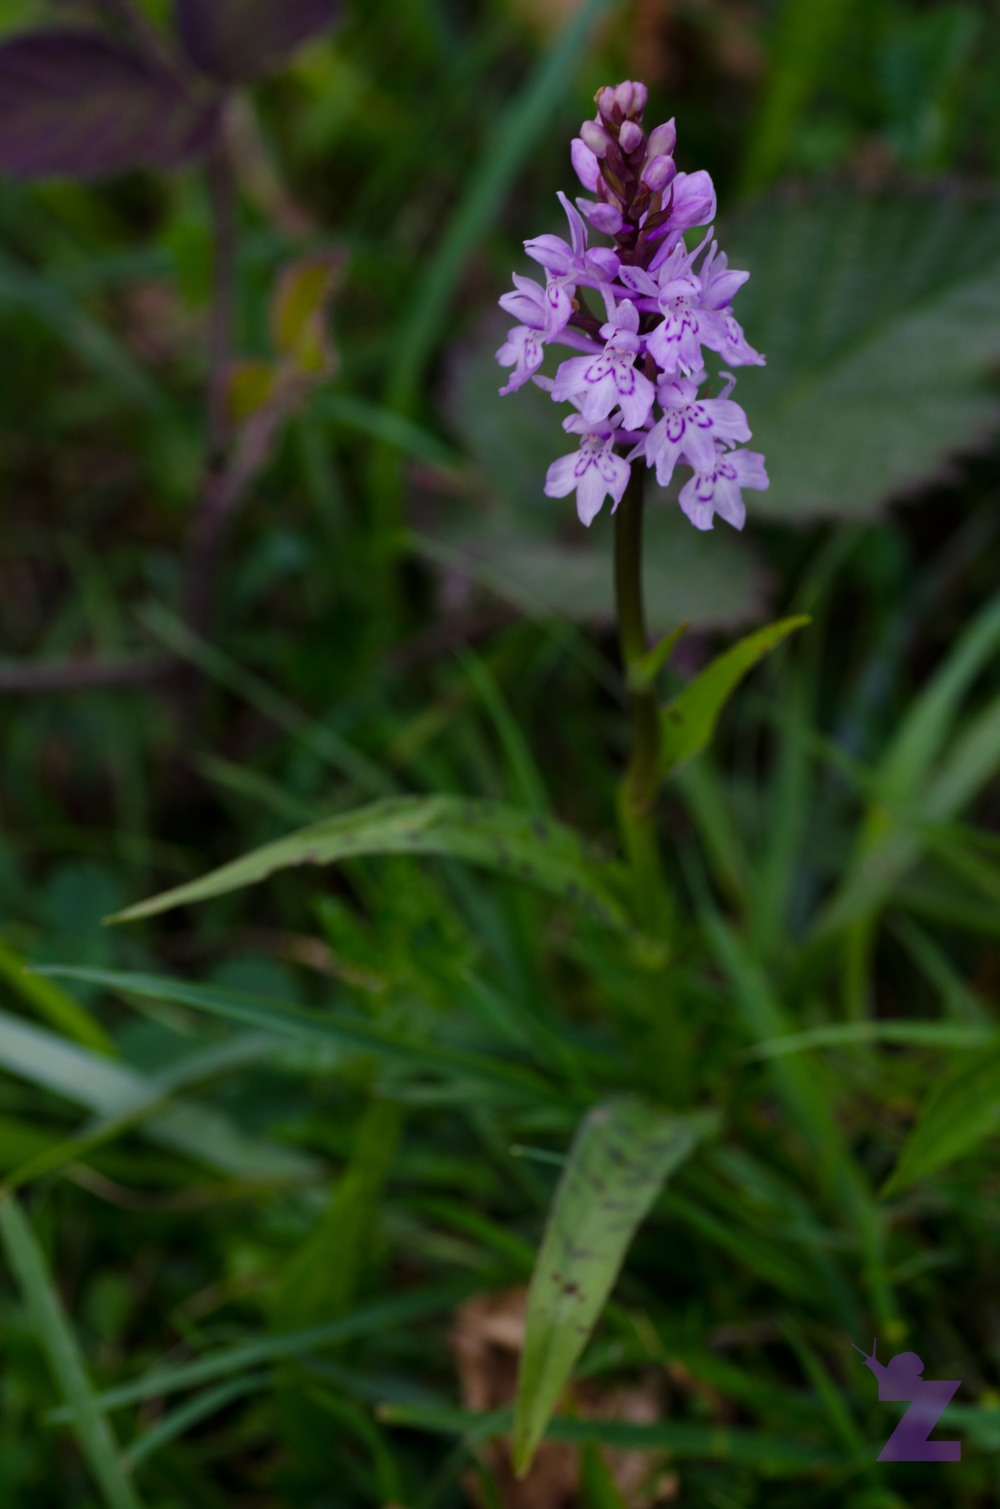 Dactylorhiza sp [MARSH & SPOTTED ORCHID] Weston-super-Mare, England 13.06.2017 (3)